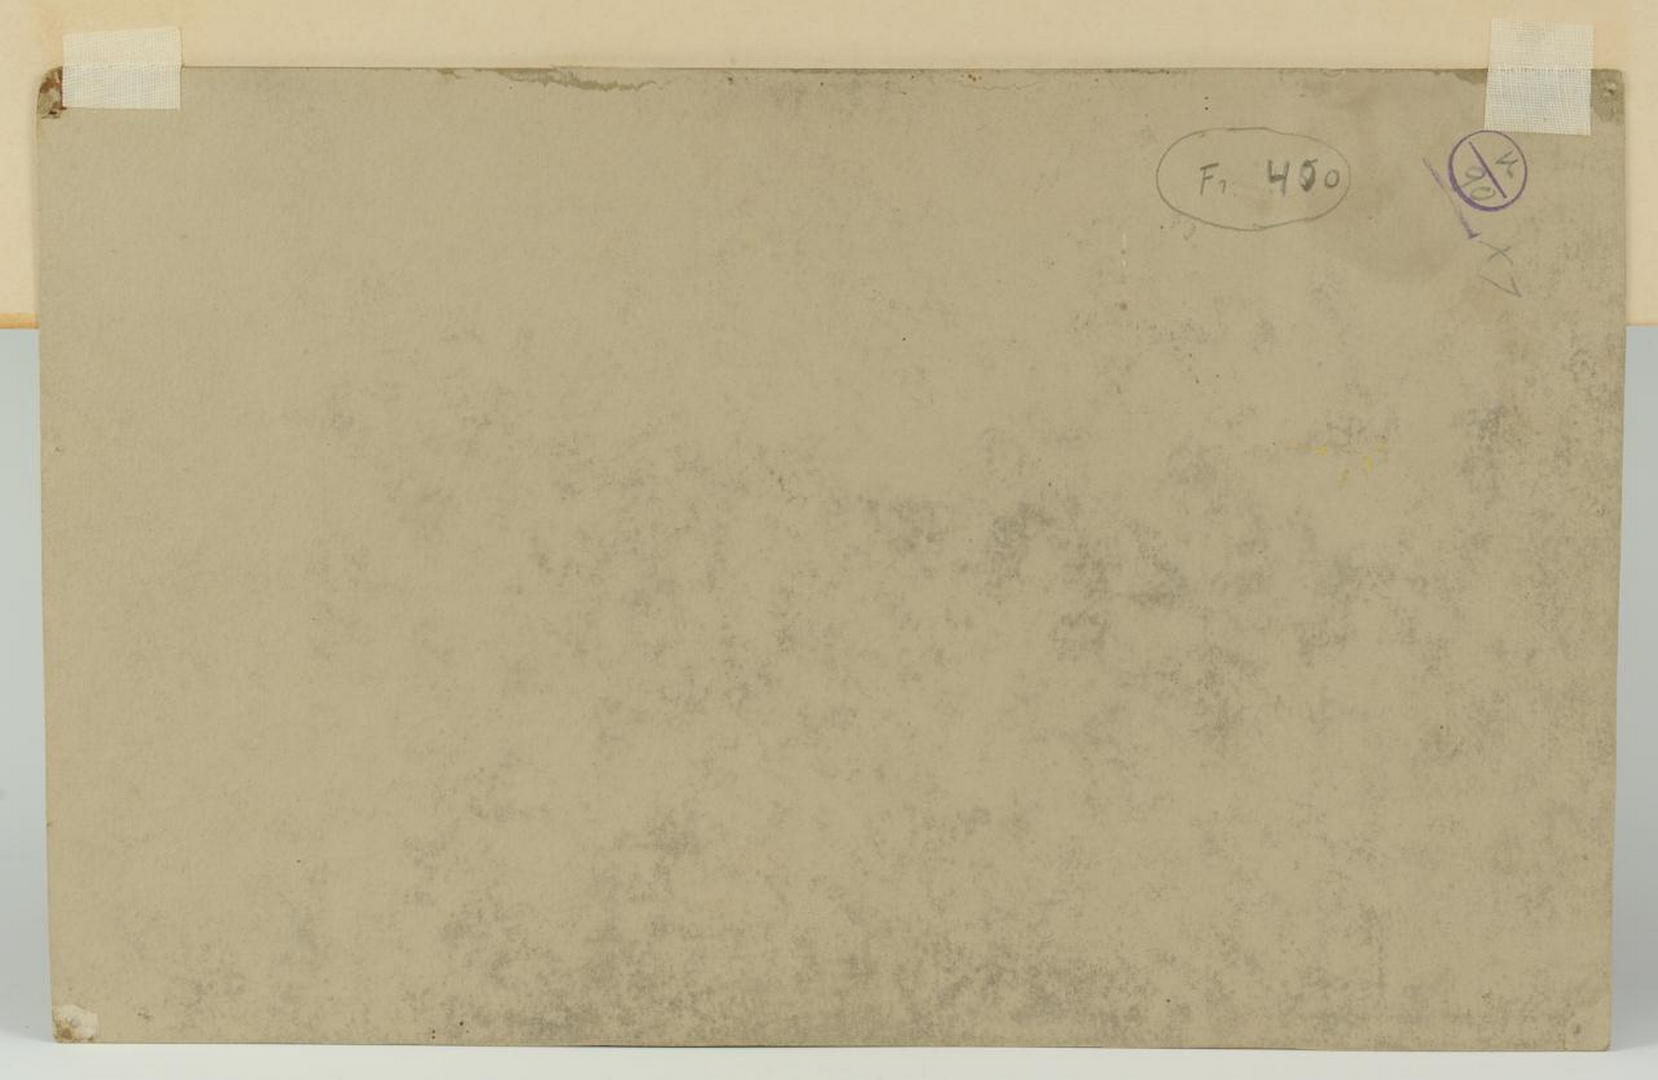 Lot 154: Sepia Ink Drawing, in the manner of Reginald Marsh